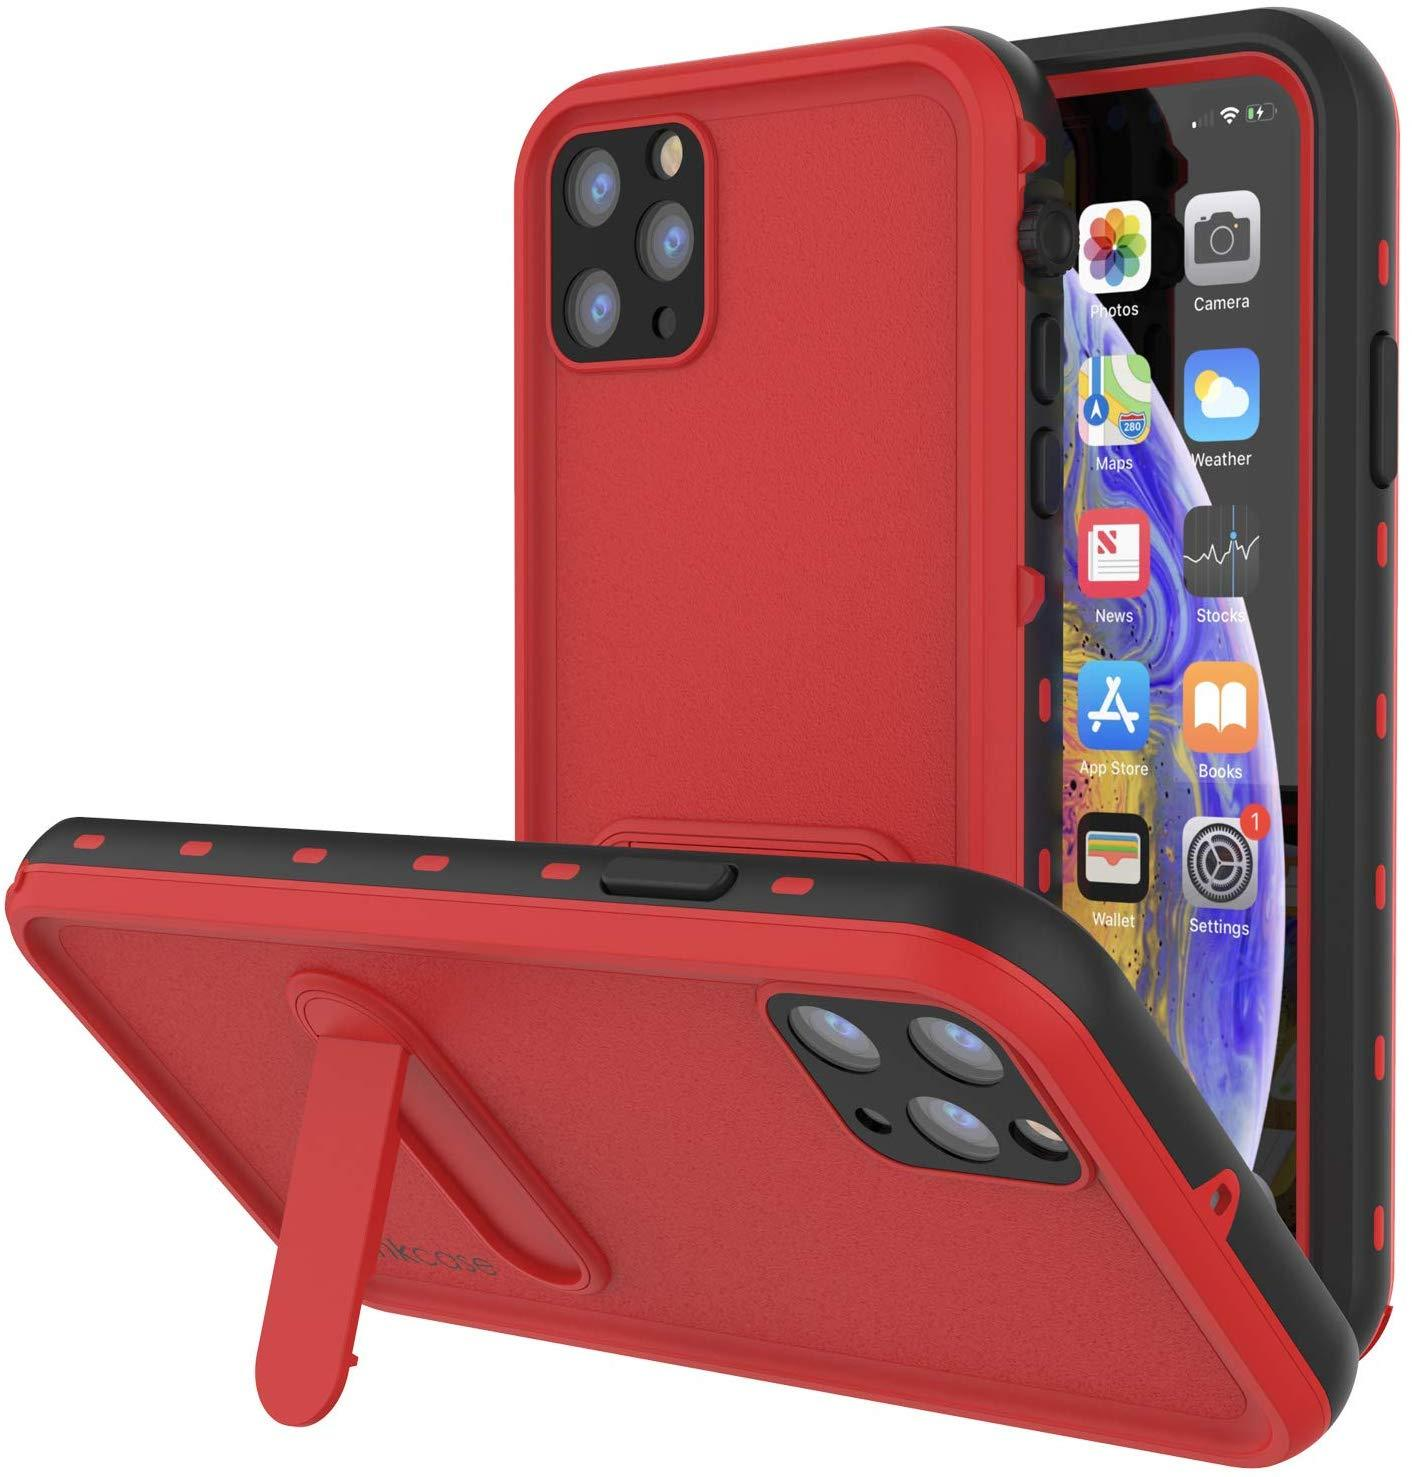 iPhone 11 Pro Max Waterproof Case, Punkcase [KickStud Series] Armor Cover [Red]